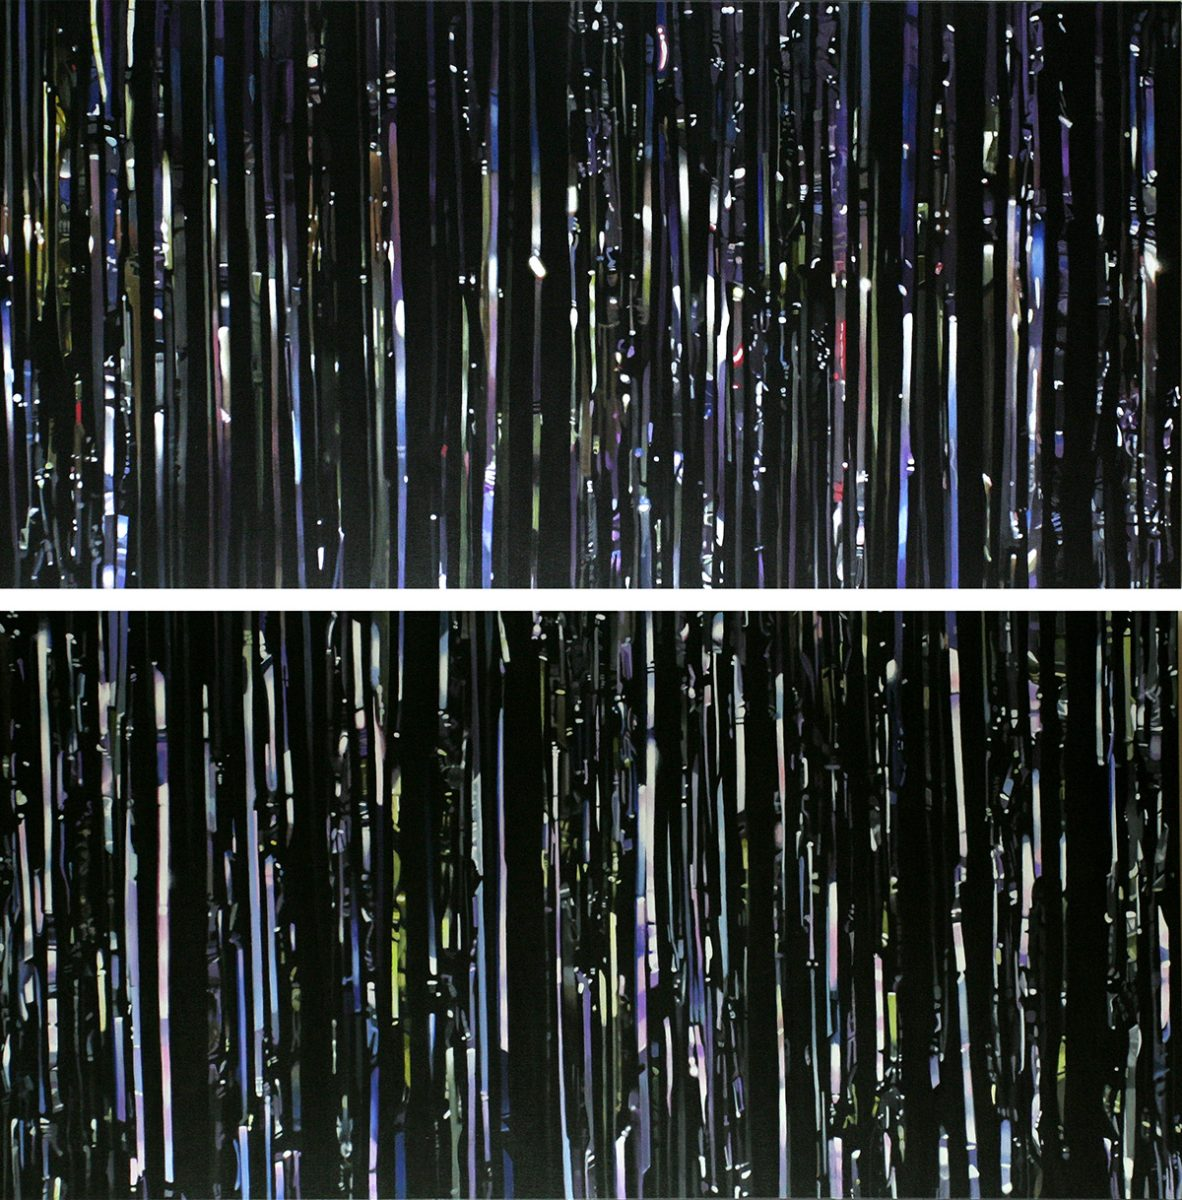 Diptych: Sparkle Curtains